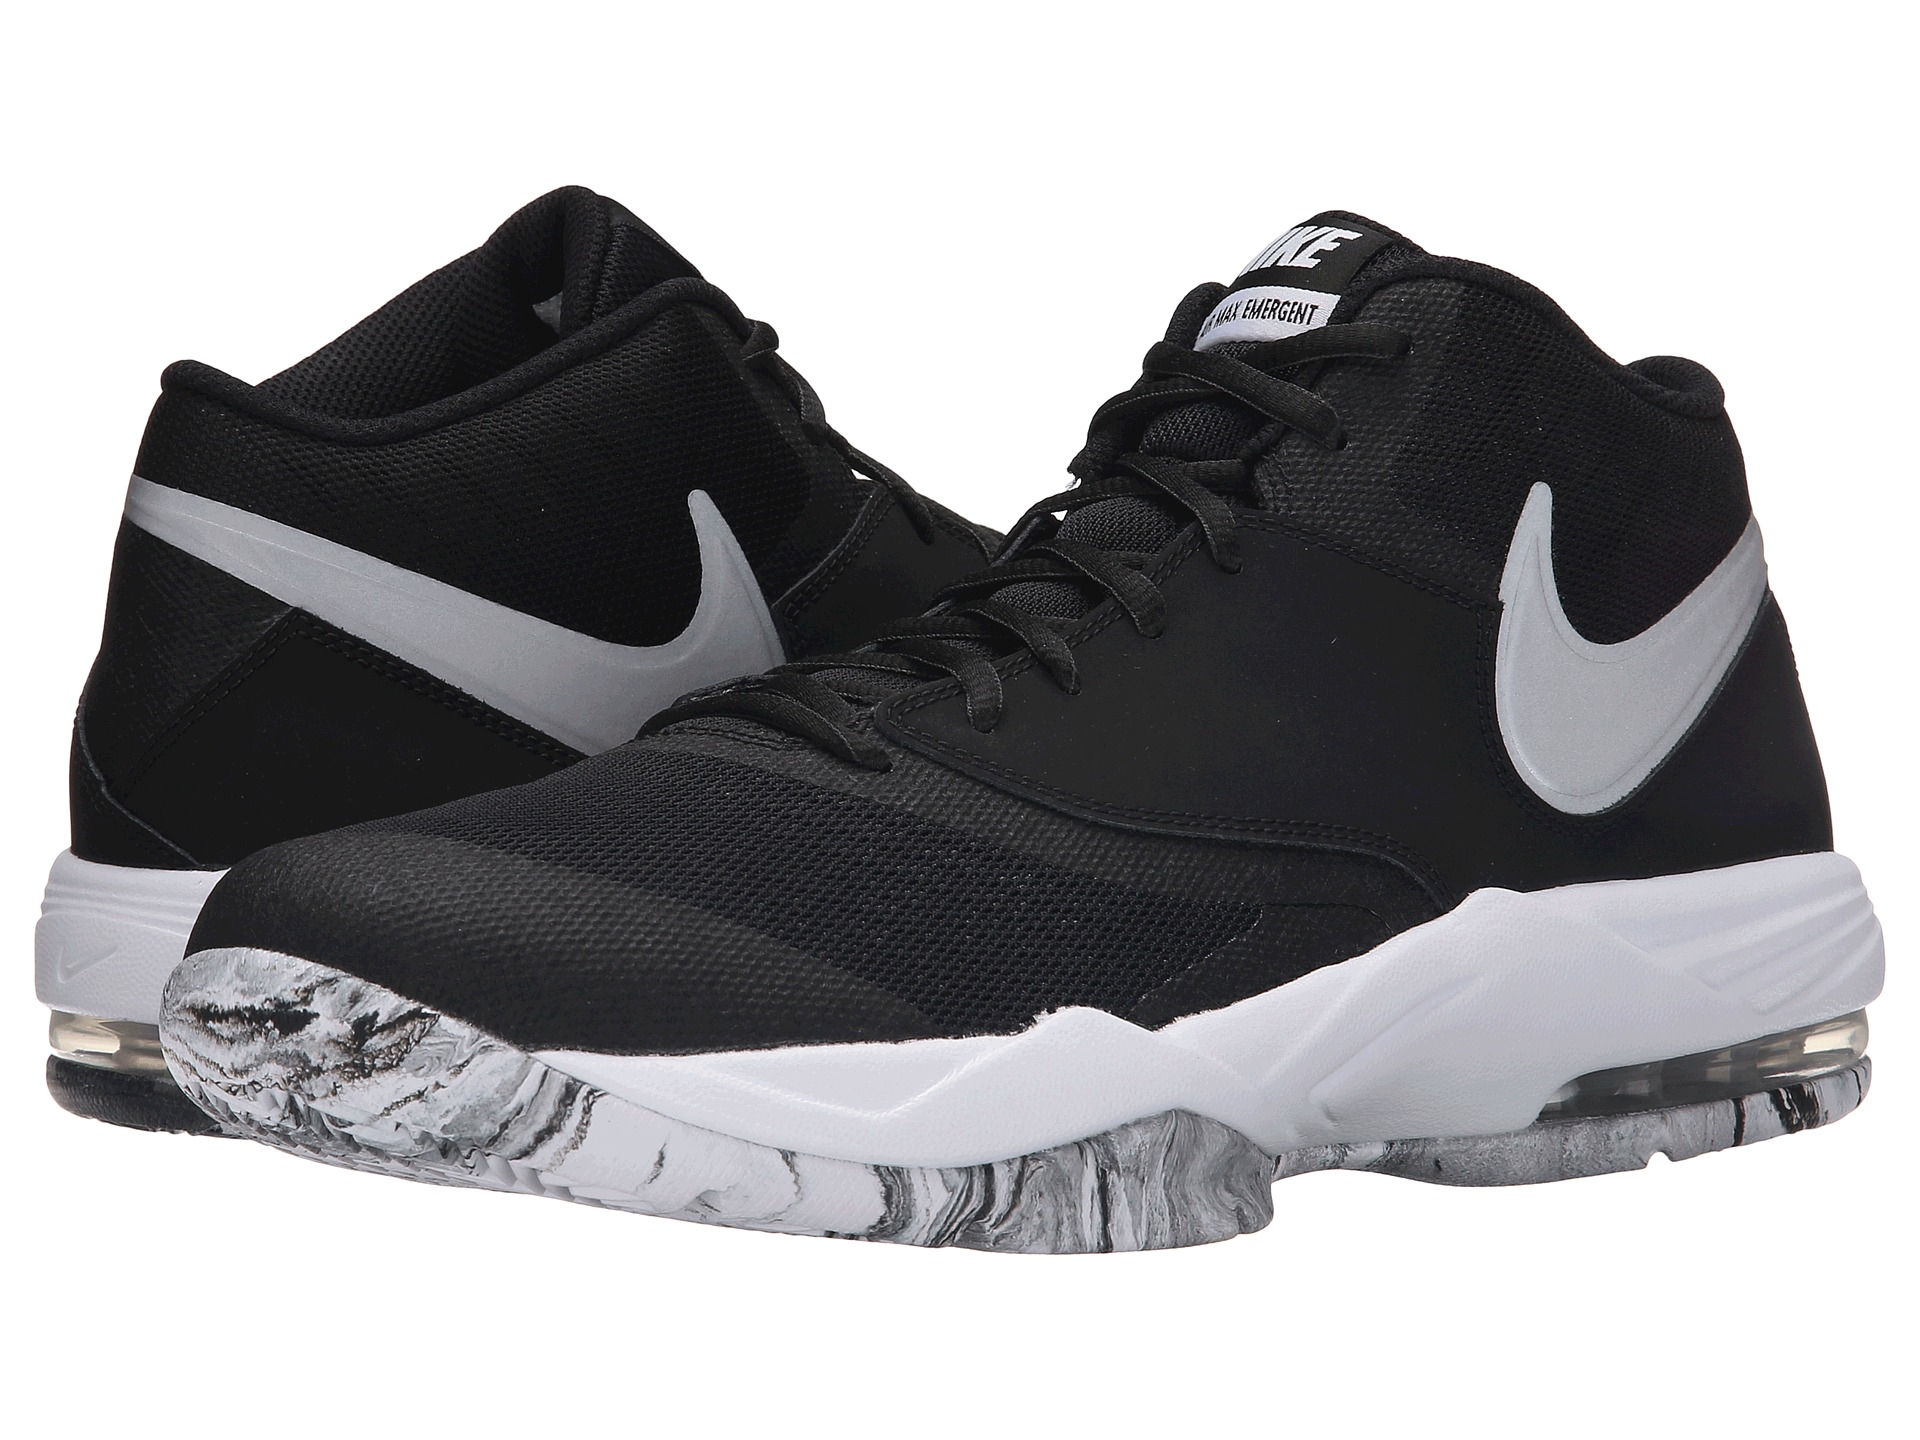 0601cc5d145 Previously sold at  Zappos · Men s Nike Air Max  Nike Air Max Emergent White  Running Shoes .